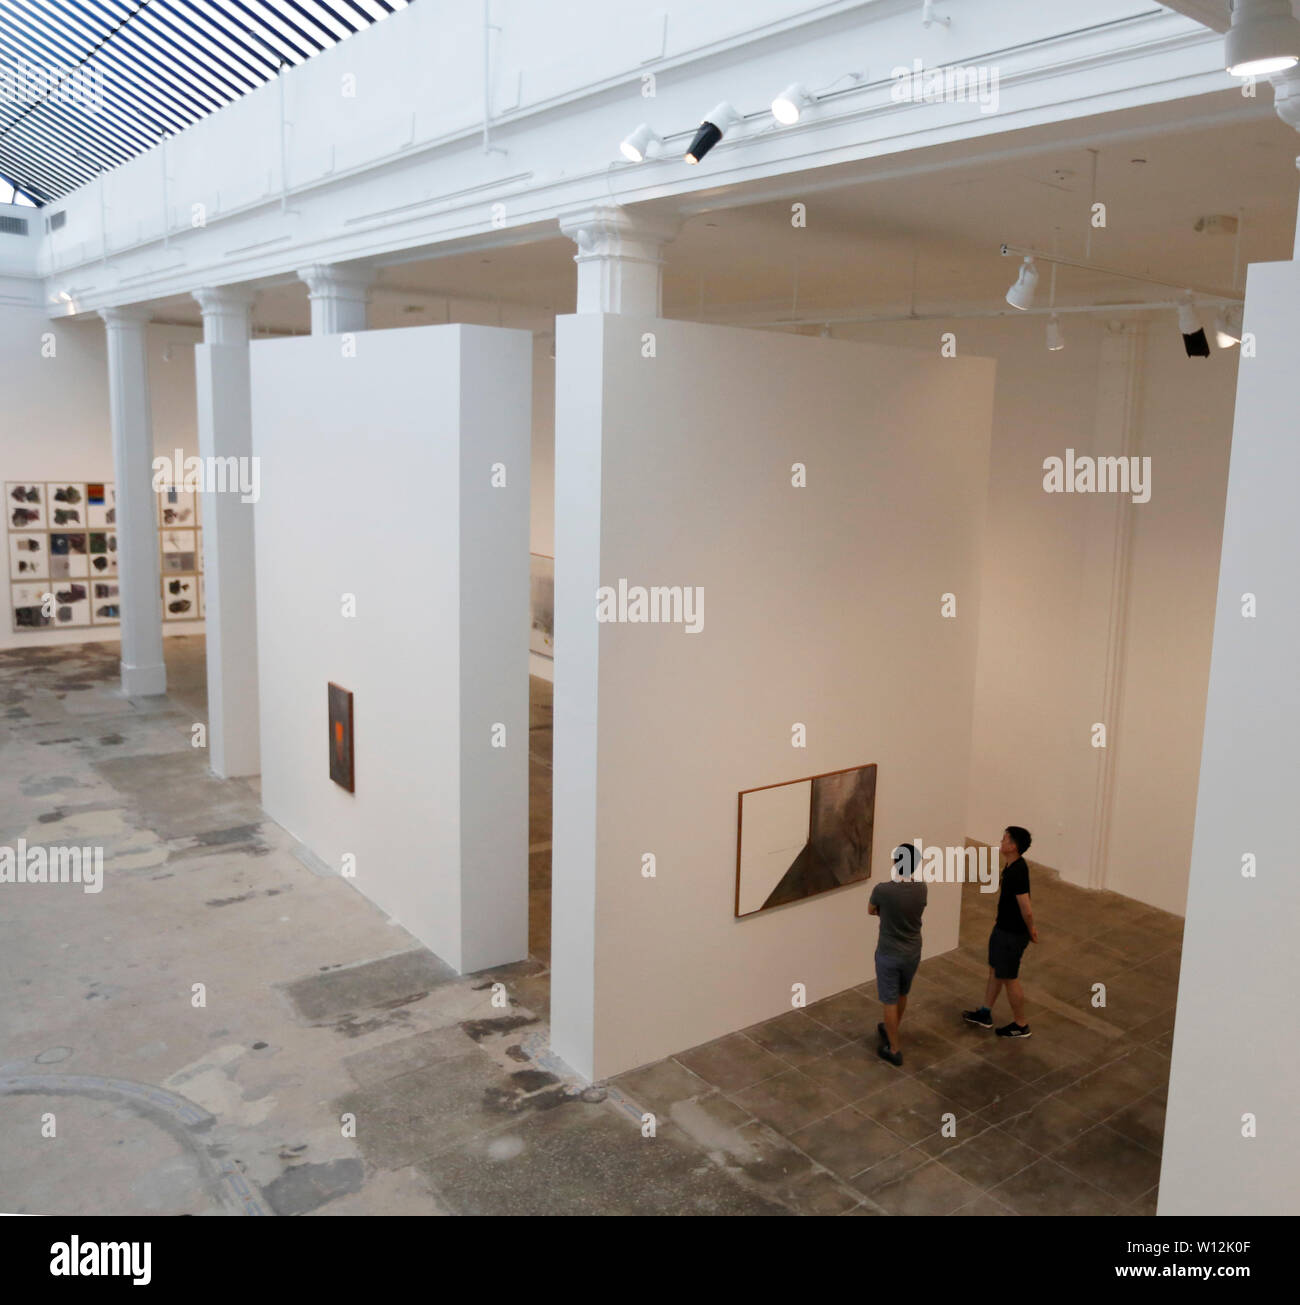 Los Angeles, USA. 28th June, 2019. People visit an exhibition of Argentine artist Guillermo Kuitca at Hauser & Wirth in Los Angeles, the United States, on June 28, 2019. Evoking the complex geometries and layered information of architectural plans and cartographic maps, Kuitca's theatrical paintings explore themes of dislocation. Credit: Li Ying/Xinhua/Alamy Live News - Stock Image